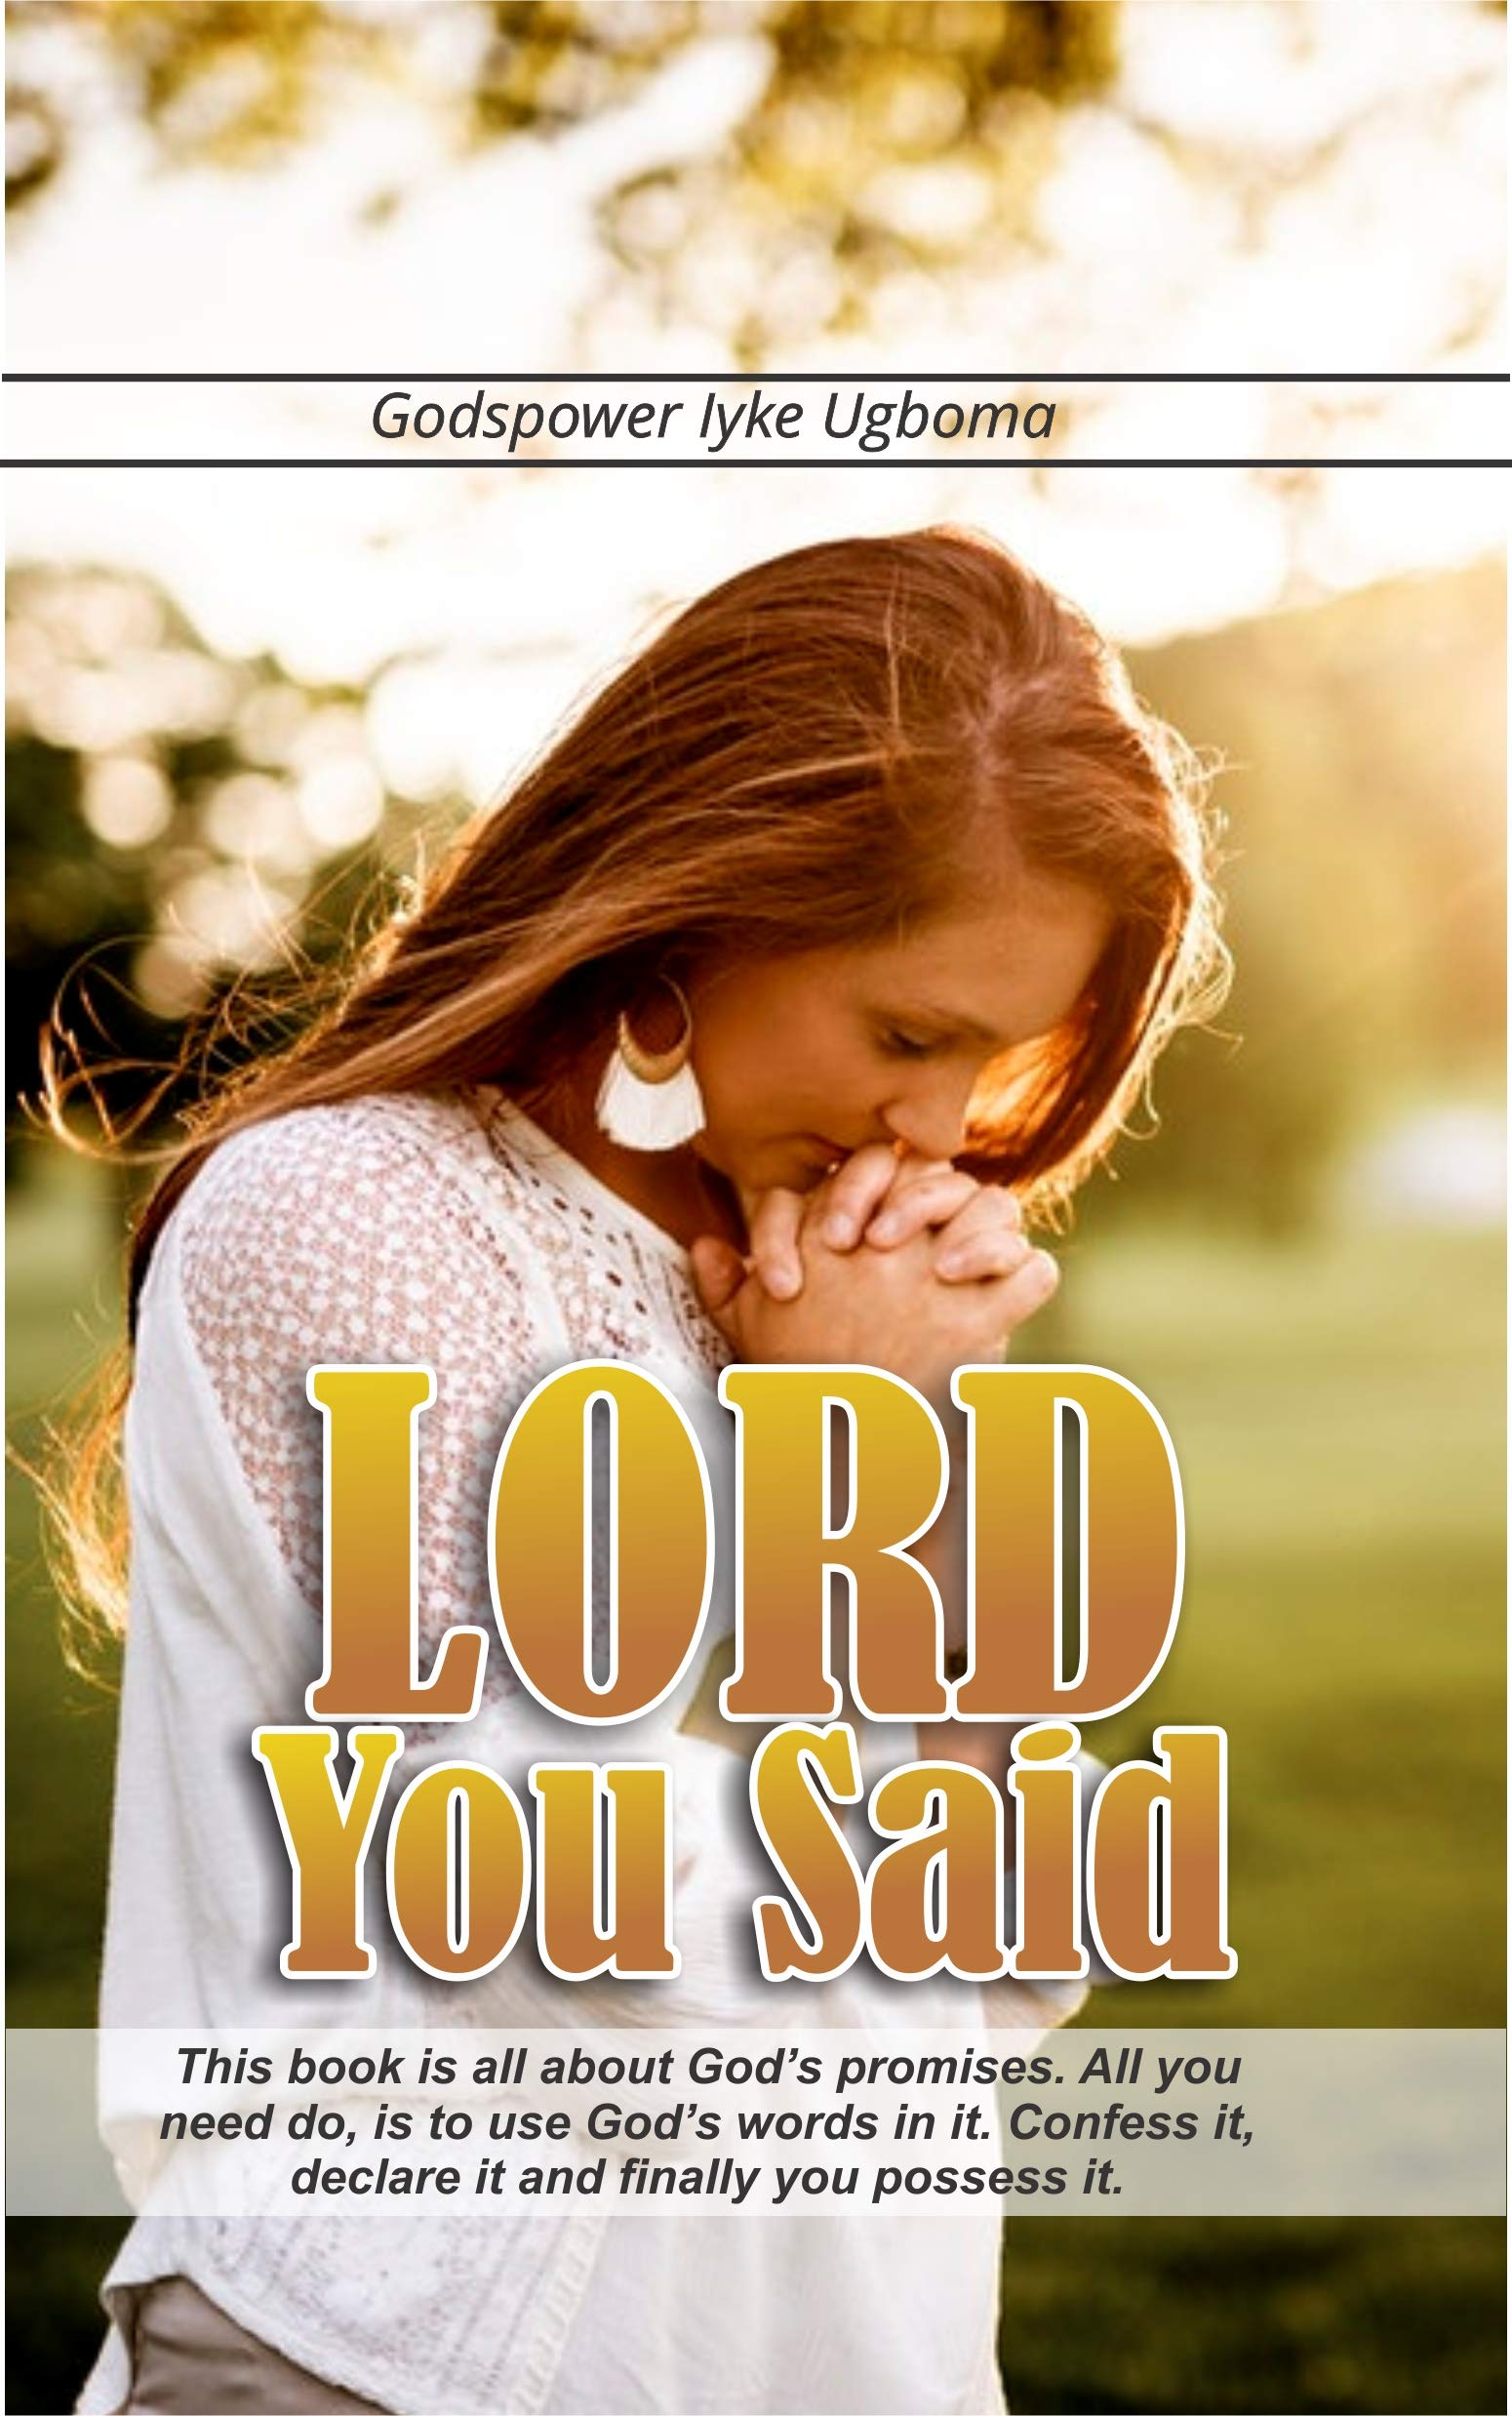 LORD YOU SAID: This book is all about God's promises. All you need do, is to use God's words in it. Confess it, declare it and finally you possess it.